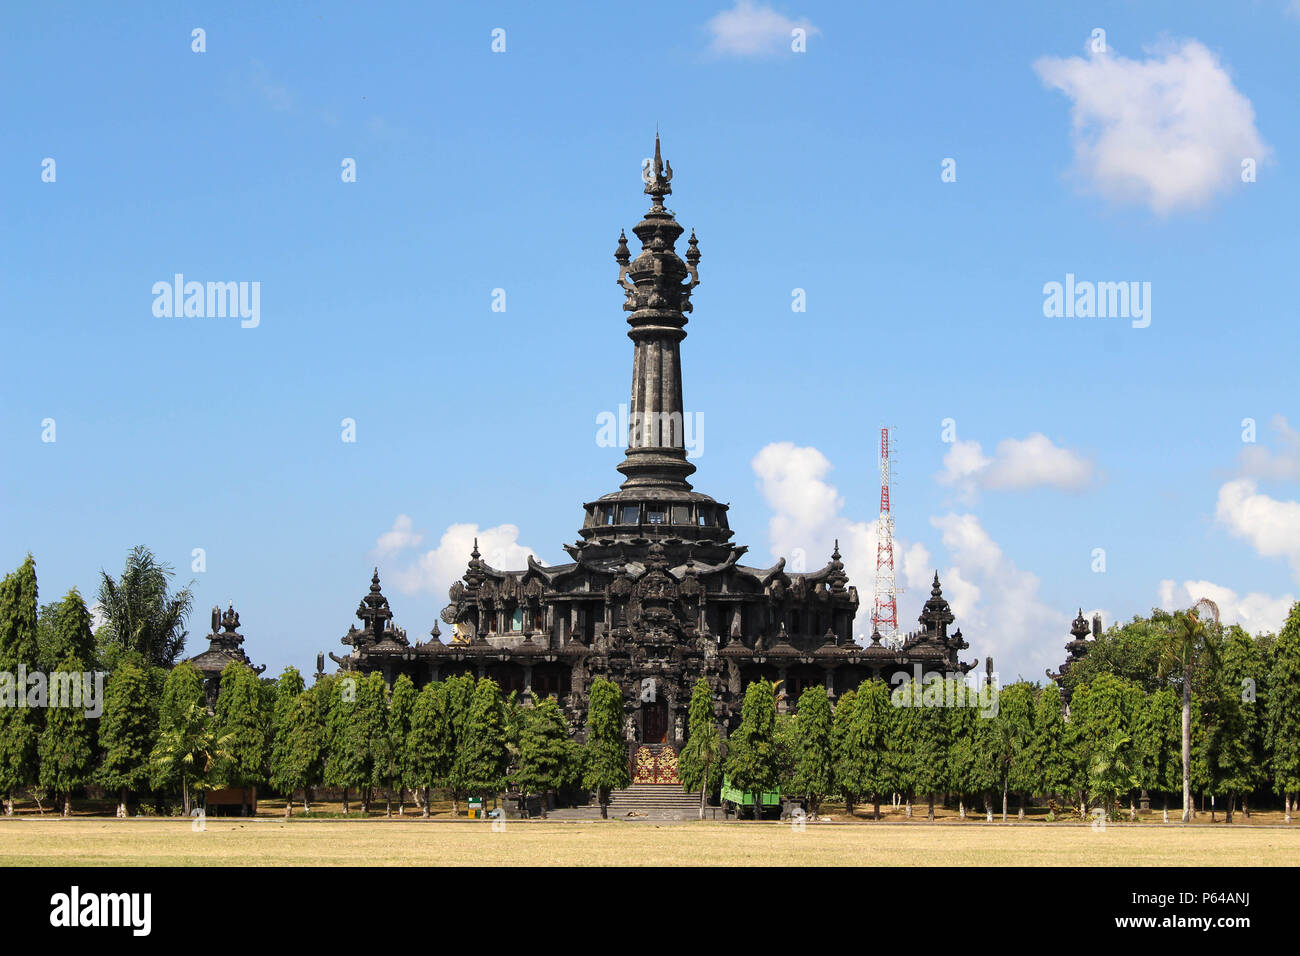 The monument of Bajra Sandhi in Renon, Indonesia. Commemorating the struggle of Balinese people throughout history. - Stock Image